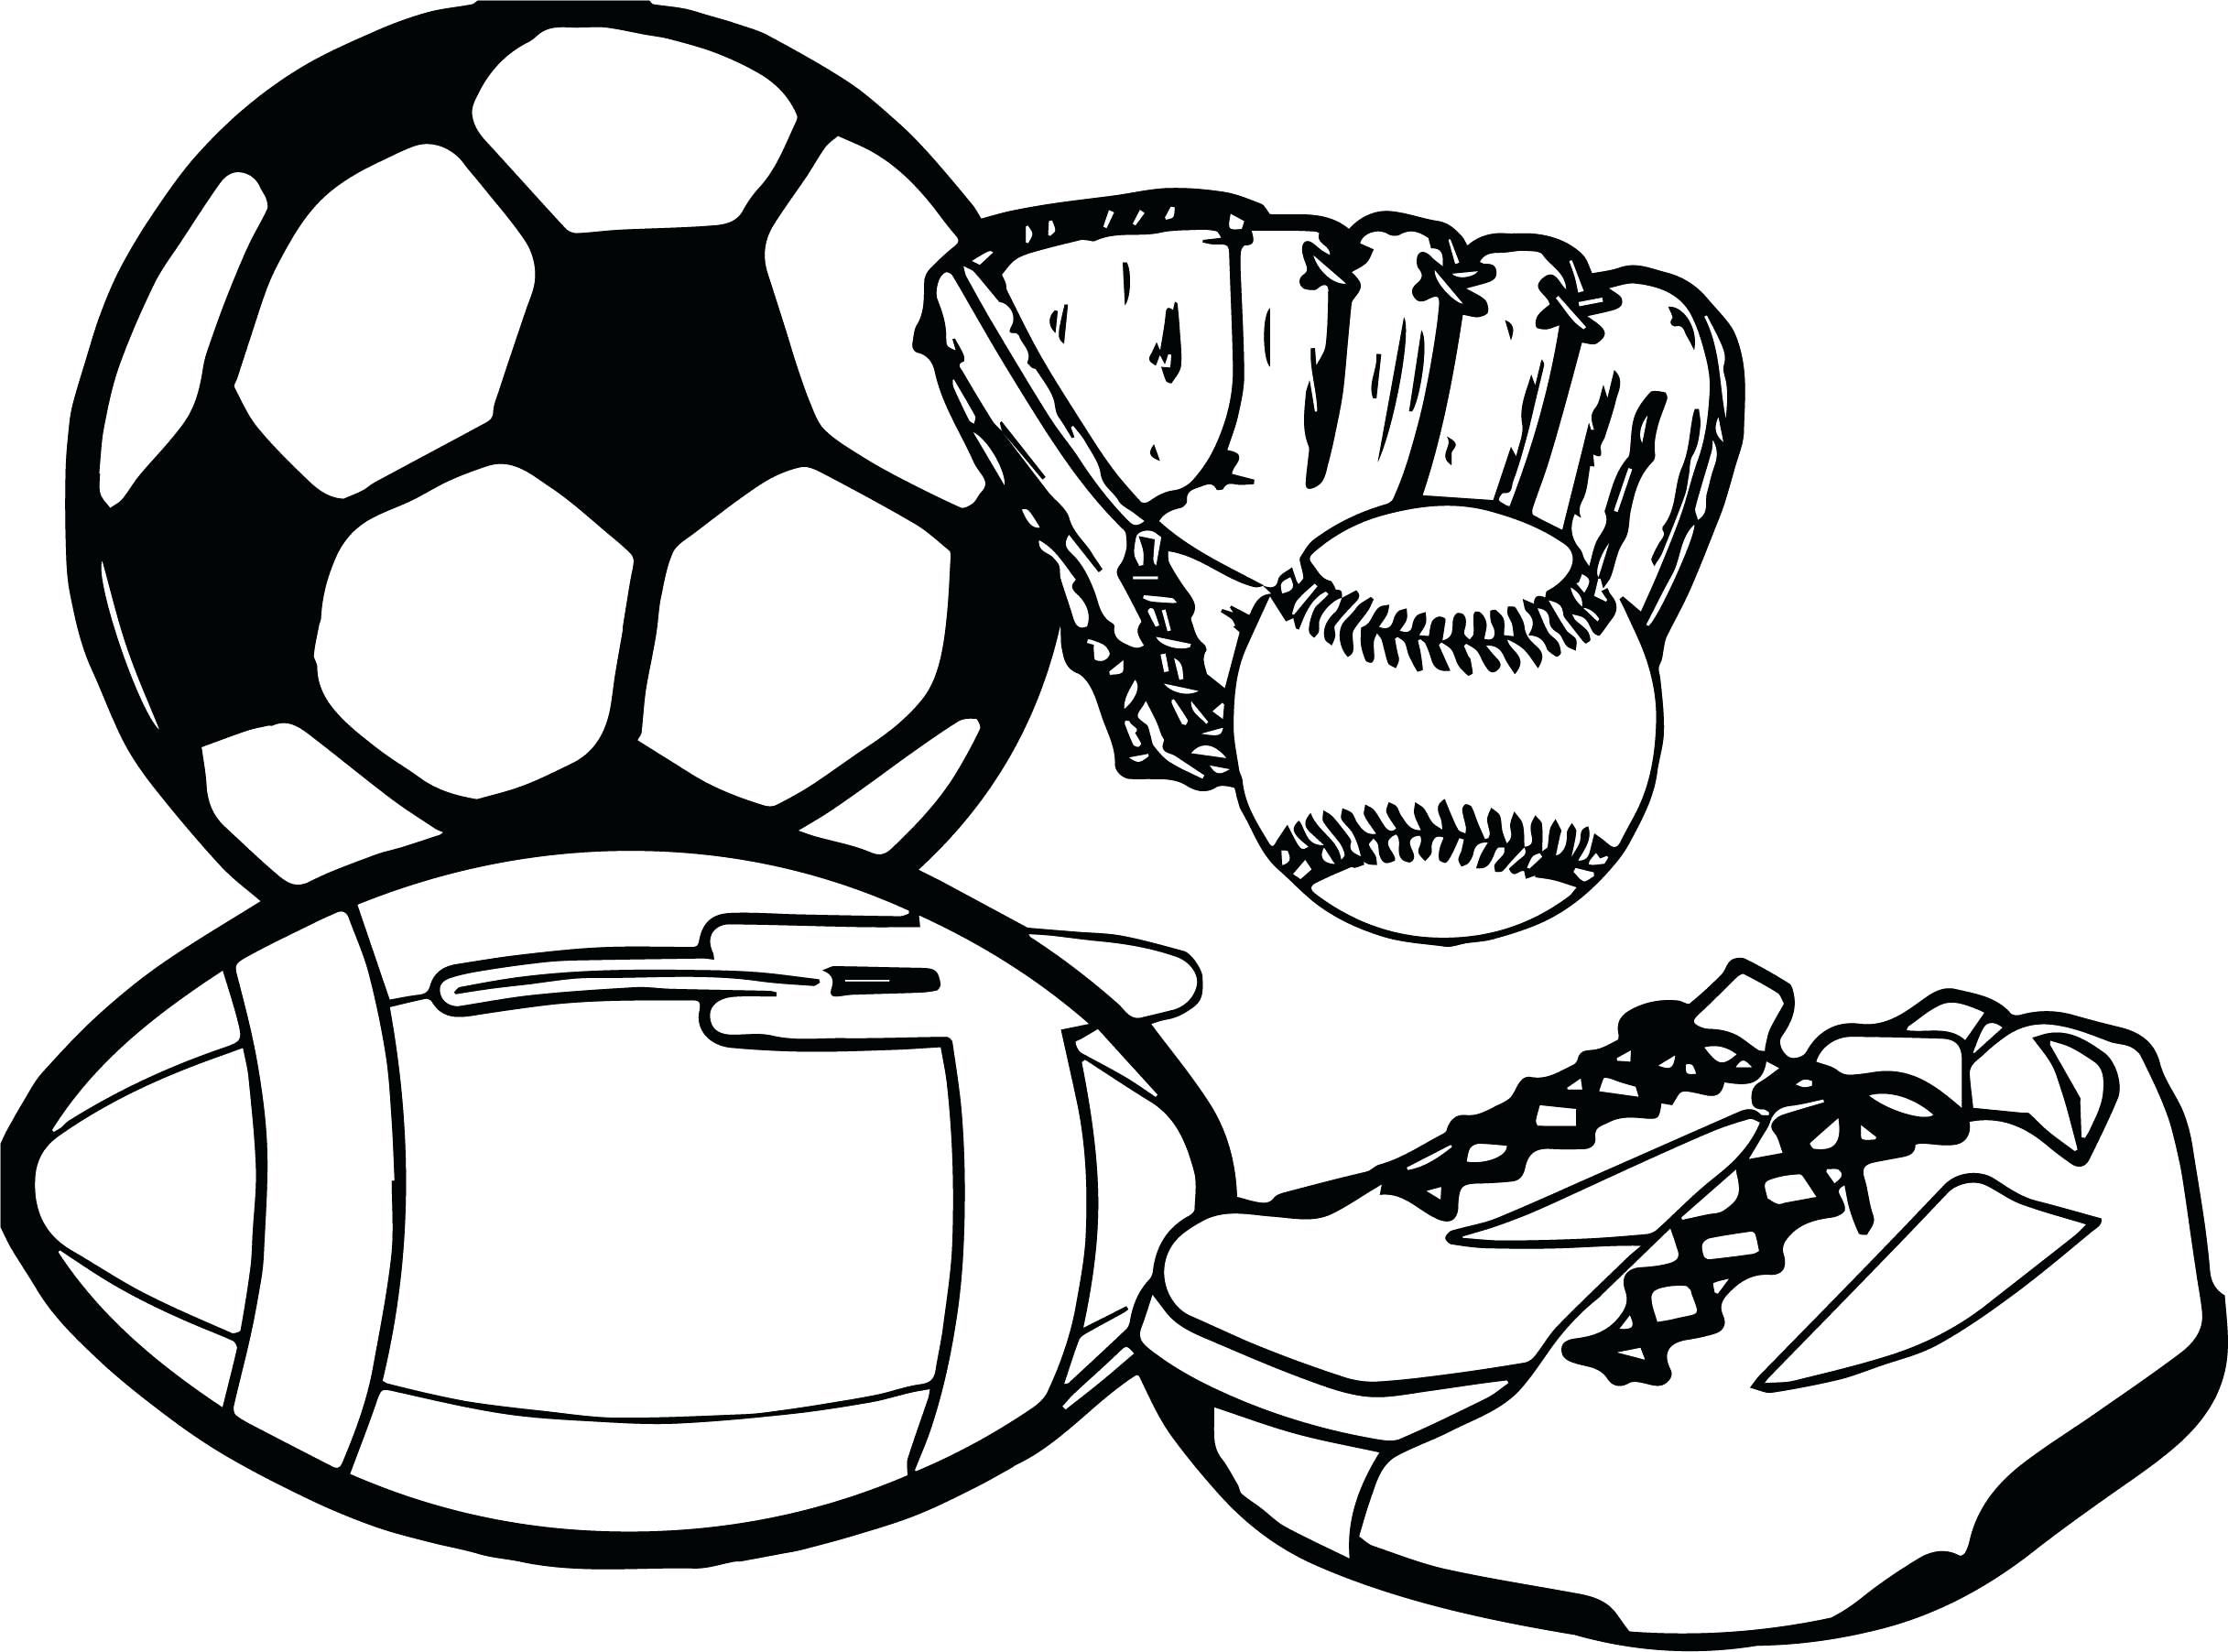 sports balls drawing at free for personal use sports balls drawing of your choice. Black Bedroom Furniture Sets. Home Design Ideas